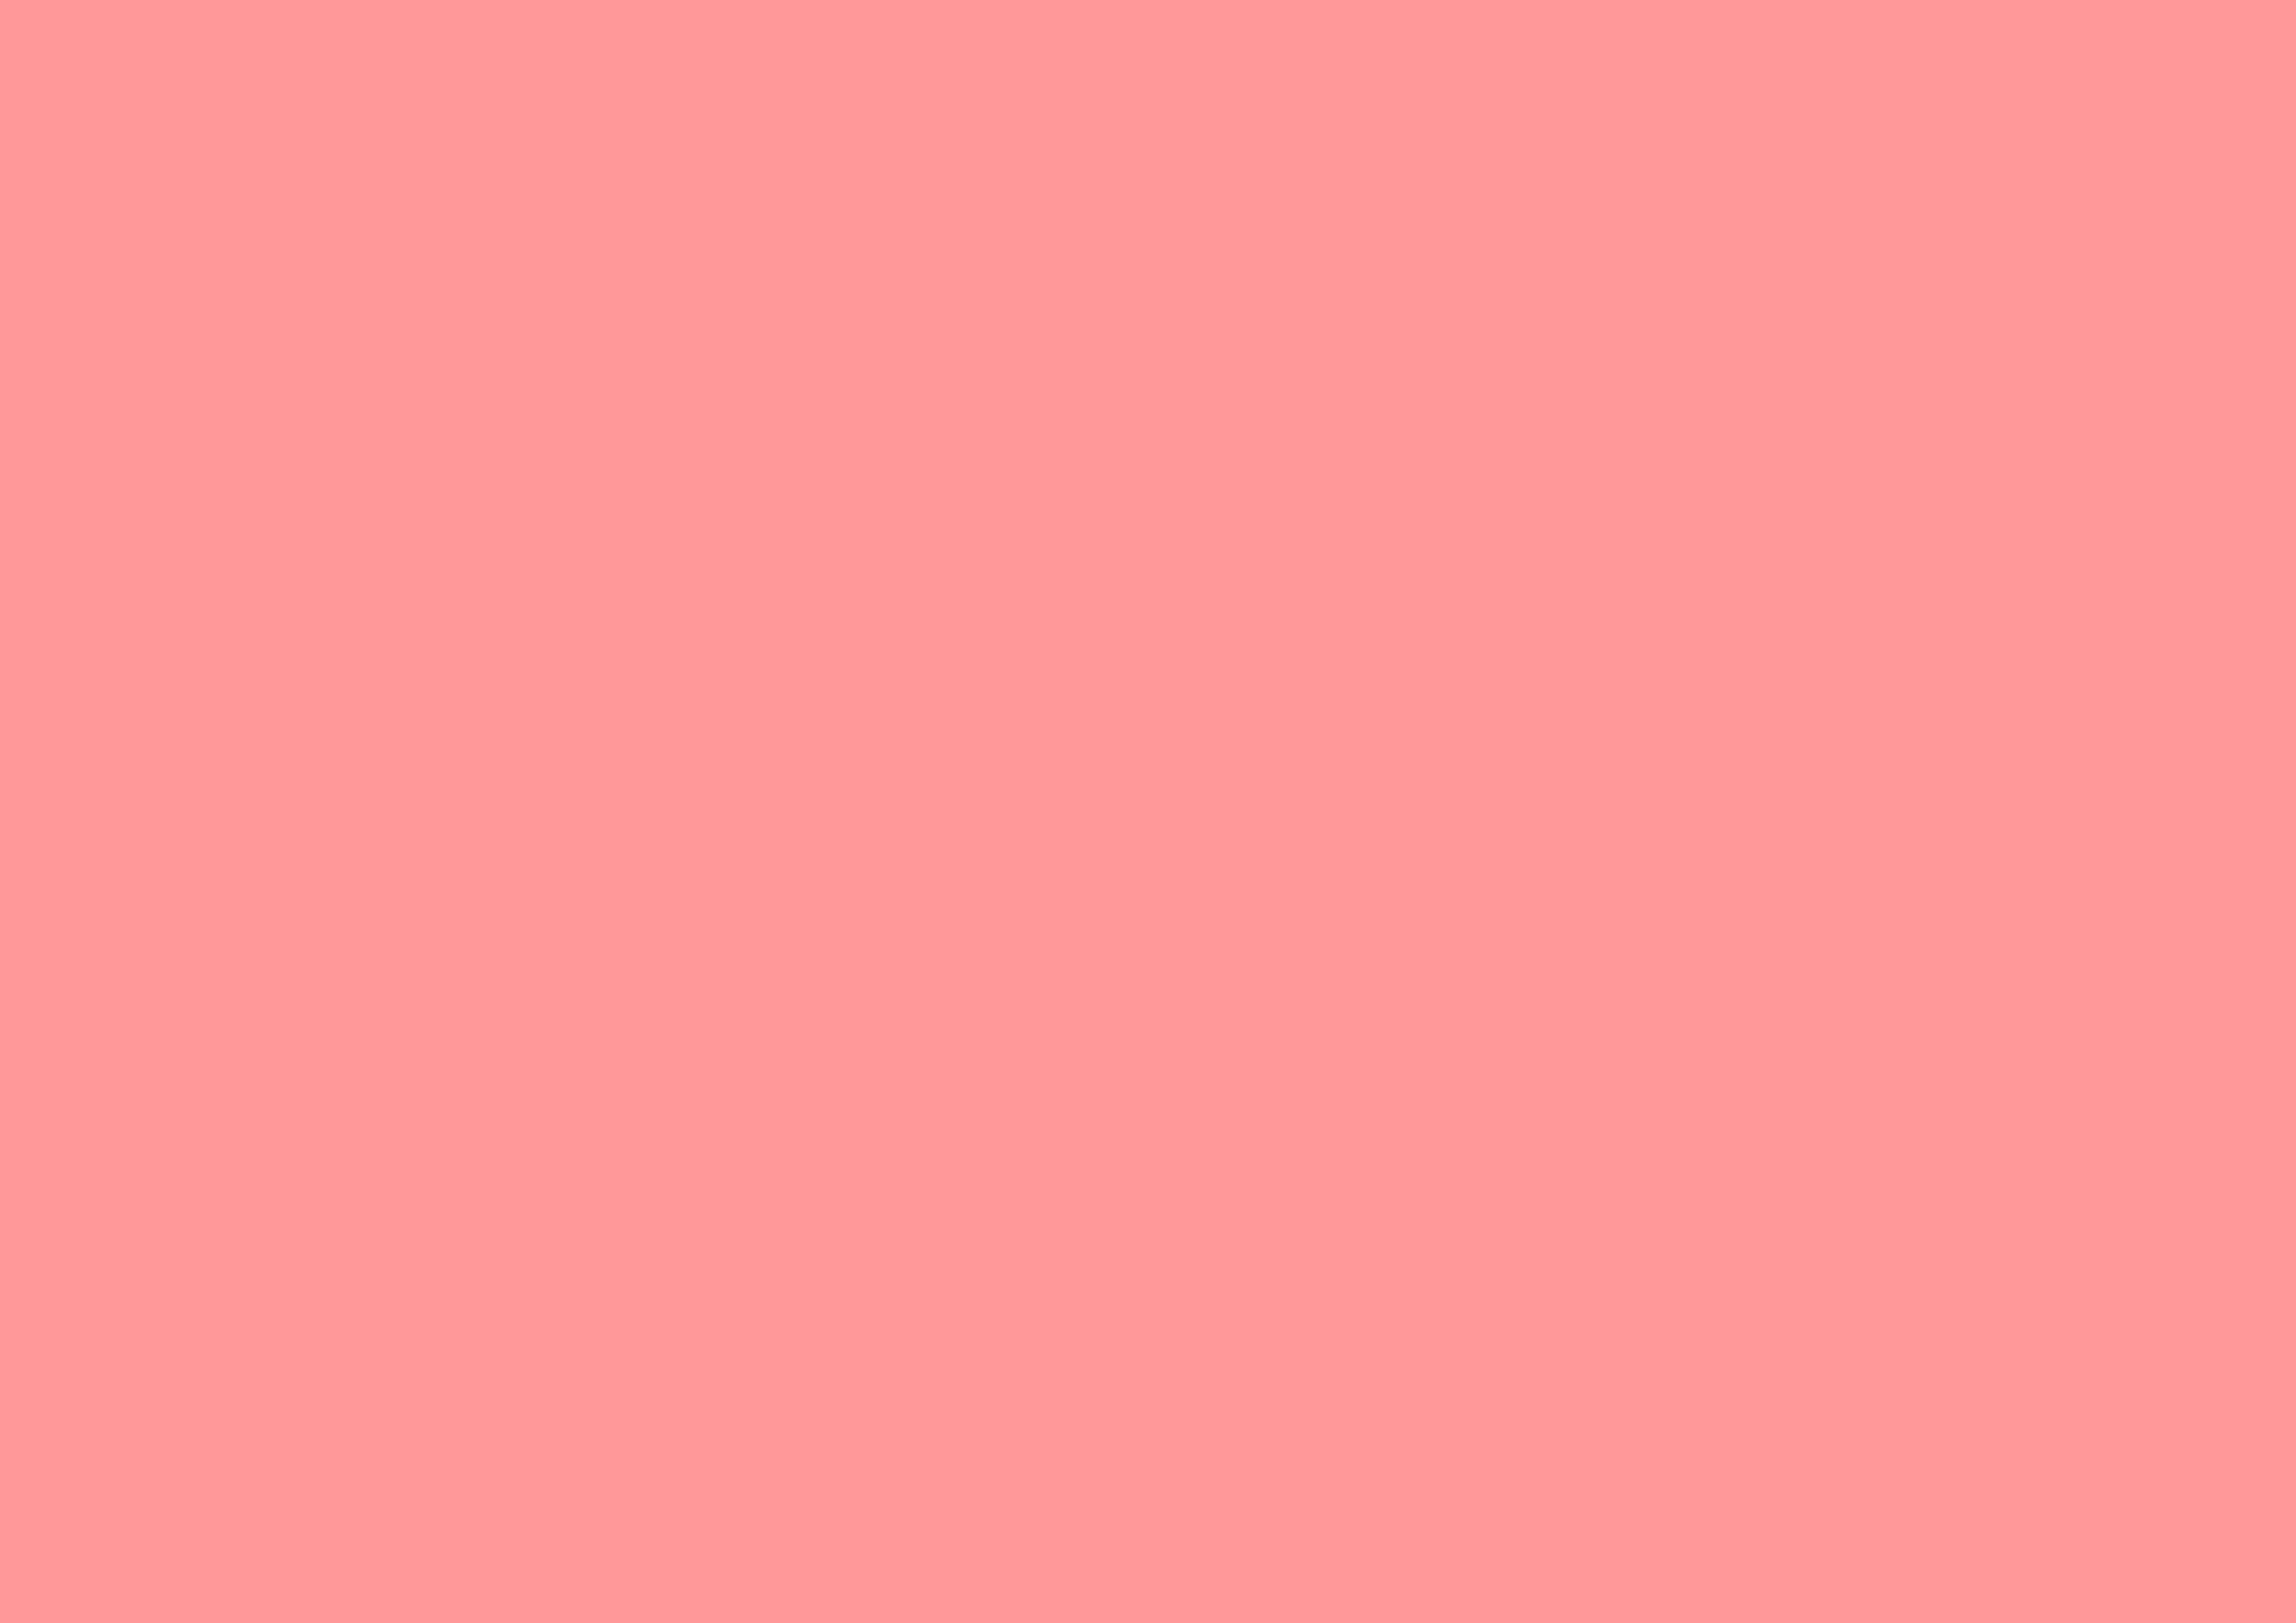 3508x2480 Light Salmon Pink Solid Color Background